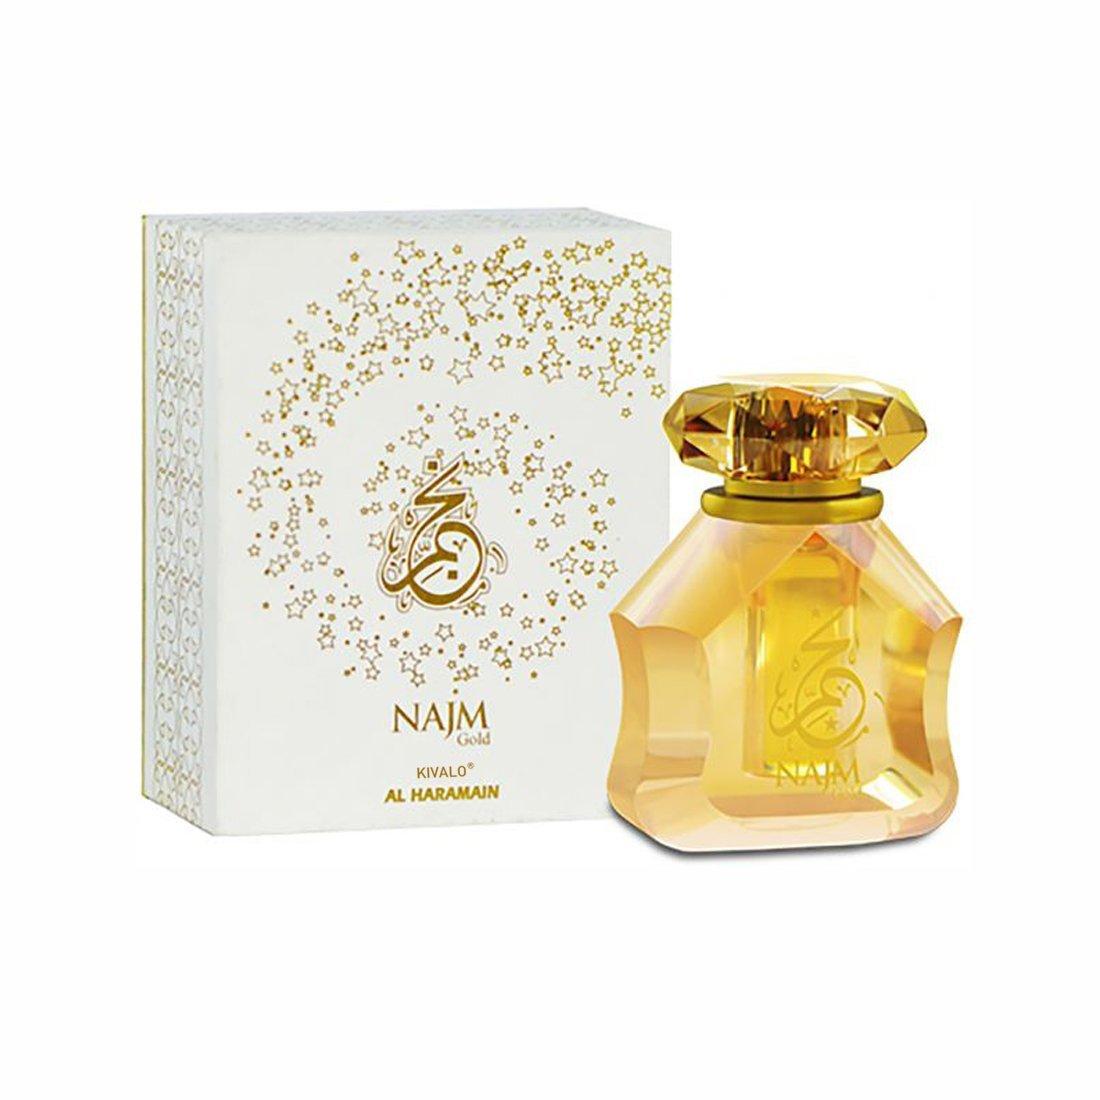 Al Haramain Najm Gold Attar 18 ml